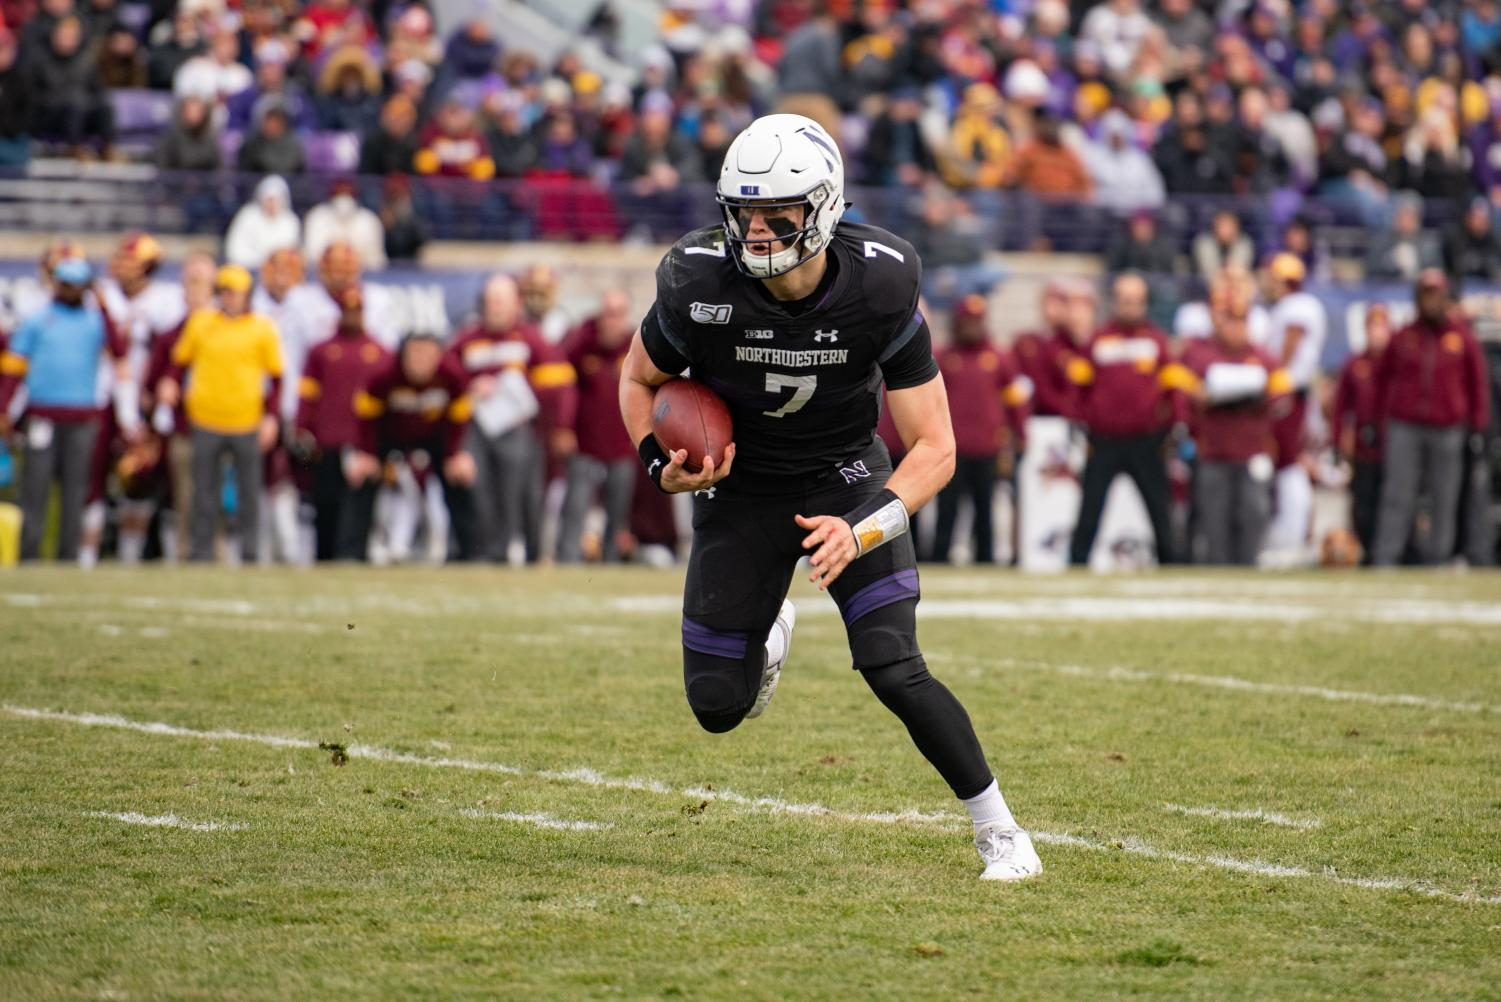 Andrew Marty carries the ball. The sophomore quarterback earned the first extended playing time of his career in Northwestern's 38-22 loss to Minnesota on Saturday at Ryan Field.